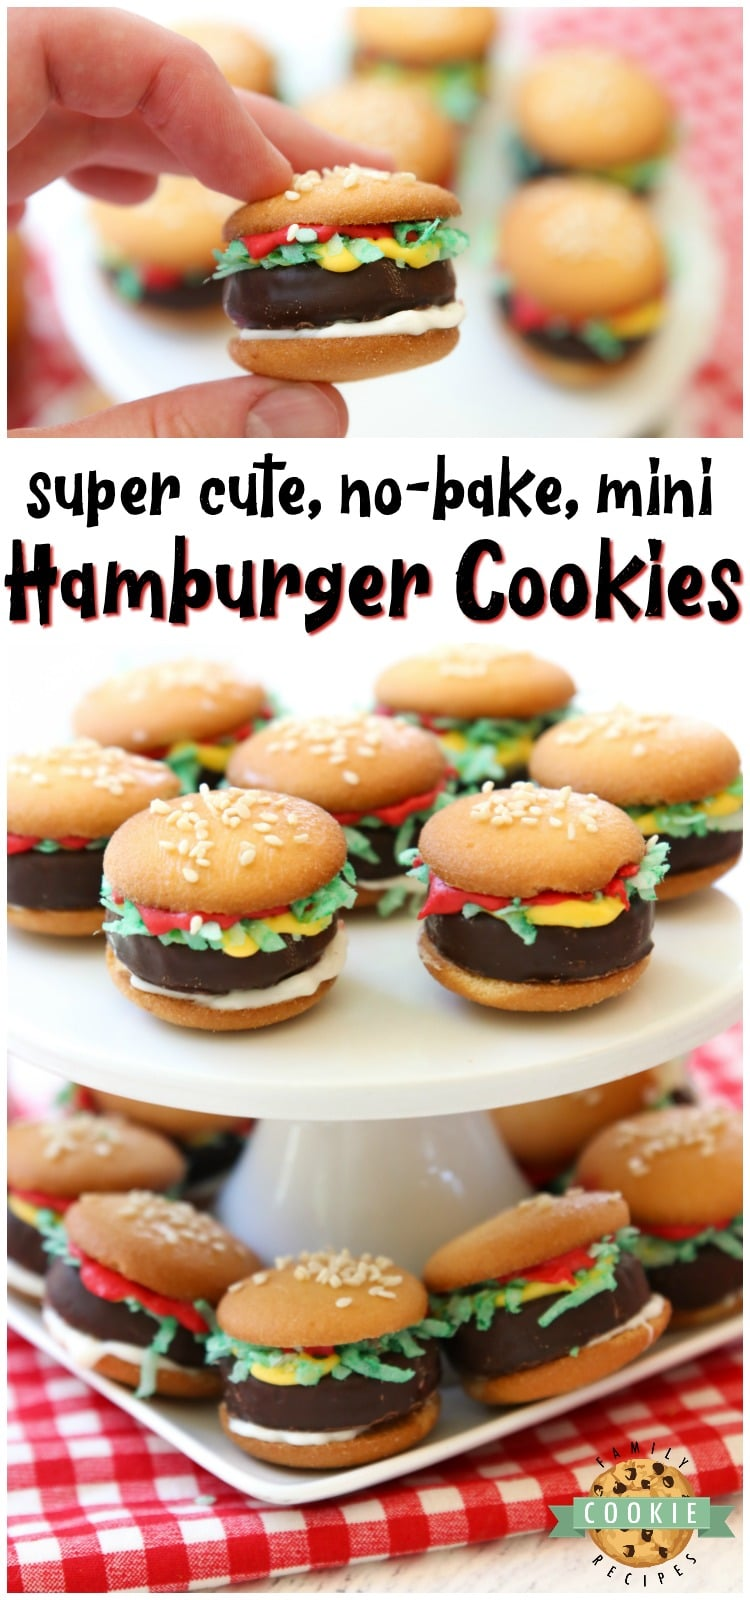 Mini Hamburger Cookies made from Nilla Wafers, York Peppermint Patties and melted candy! Super cute no-bake hamburger cookies that kids go crazy over! #cookies #nobake #hamburgers #burgers #miniburgers #candy #dessert #kidfood from FAMILY COOKIE RECIPES